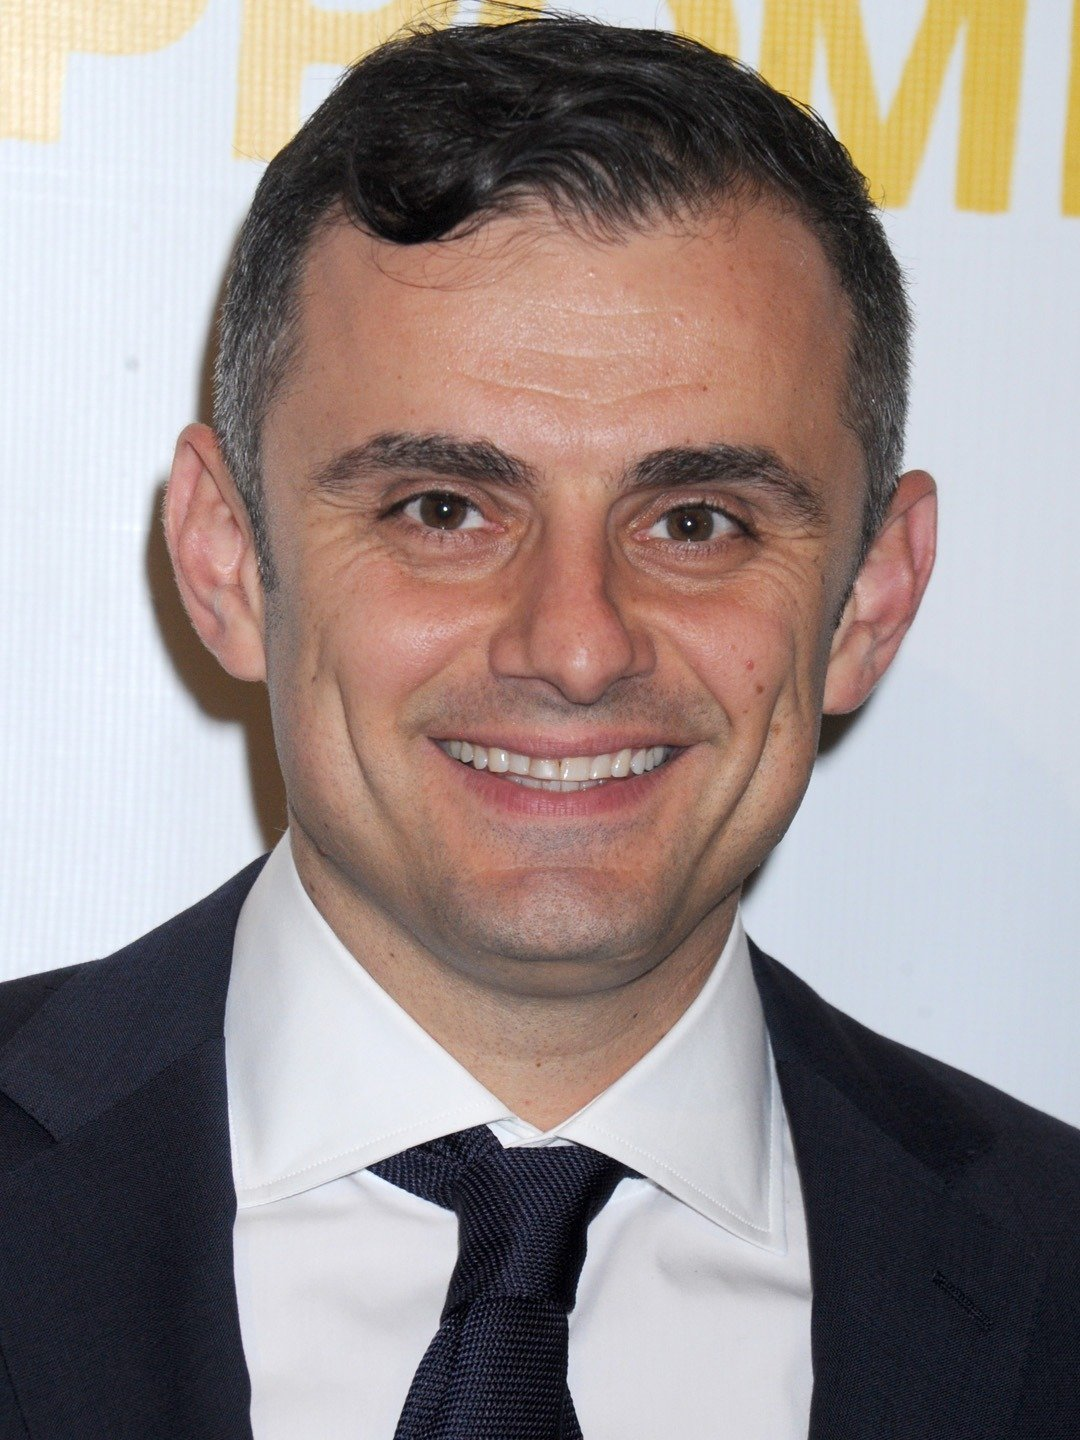 Image result for who is gary vaynerchuk